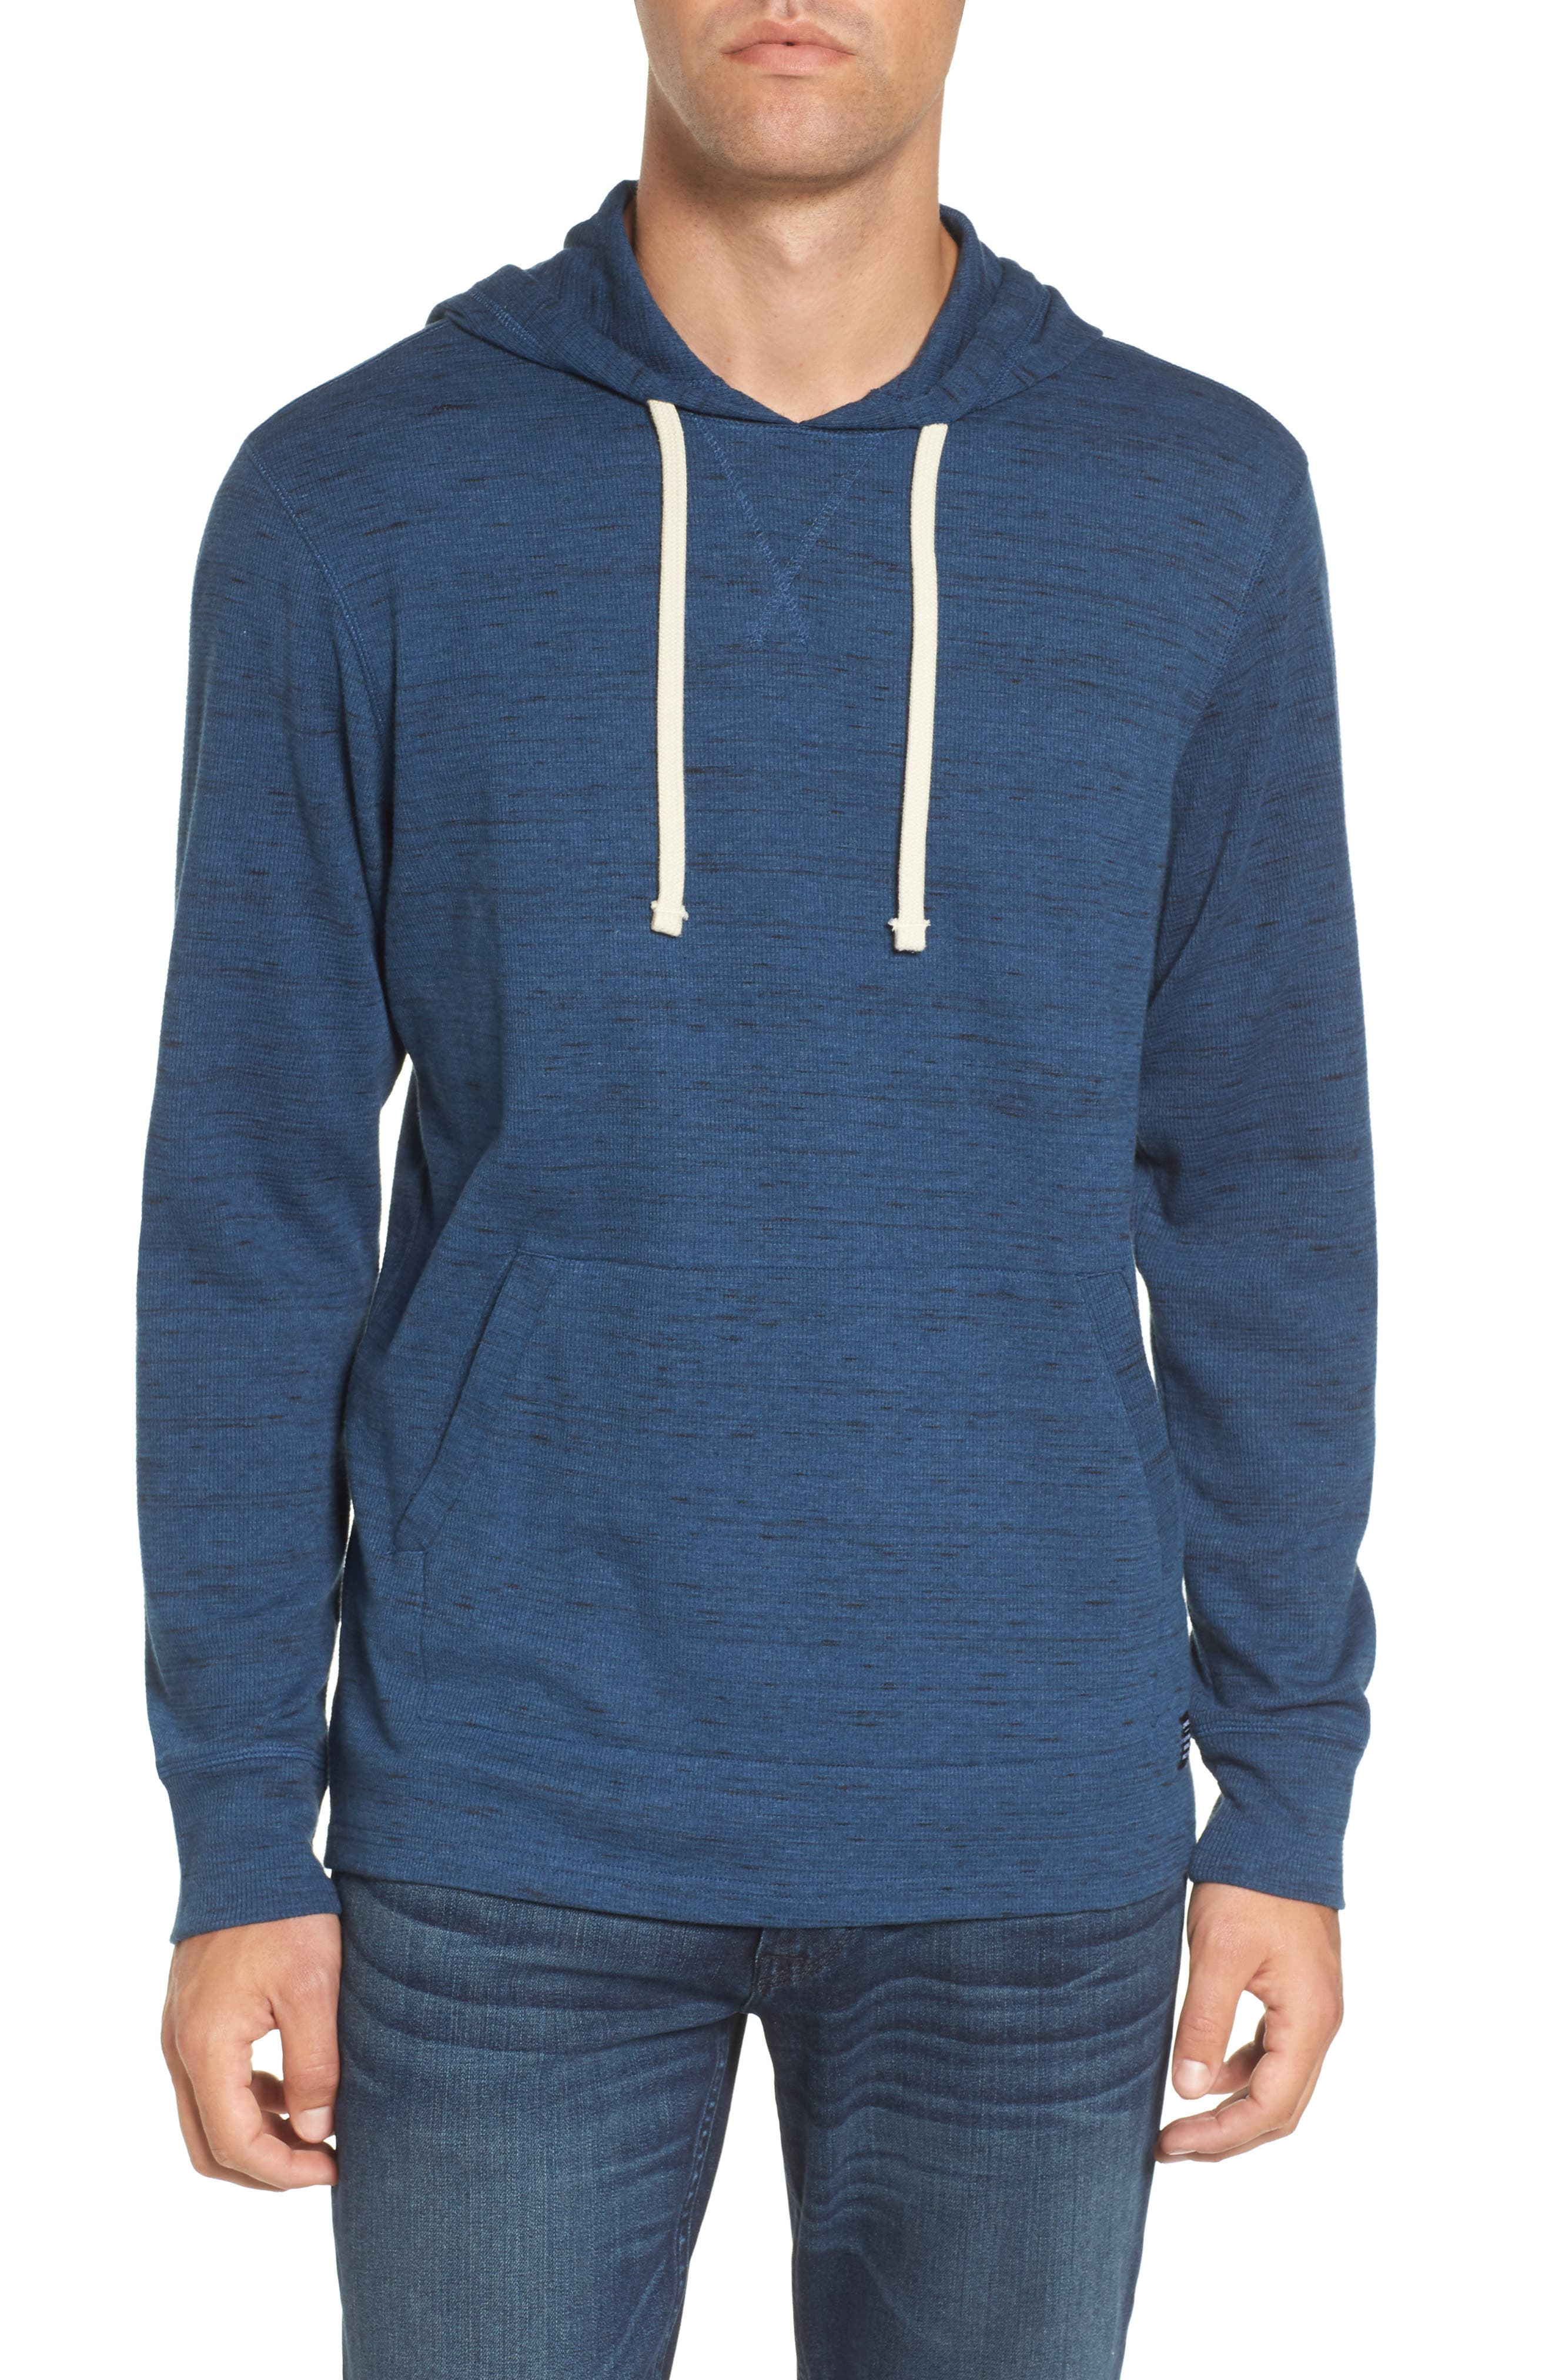 Main Image - O'Neill Boldin Thermal Pullover Hoodie